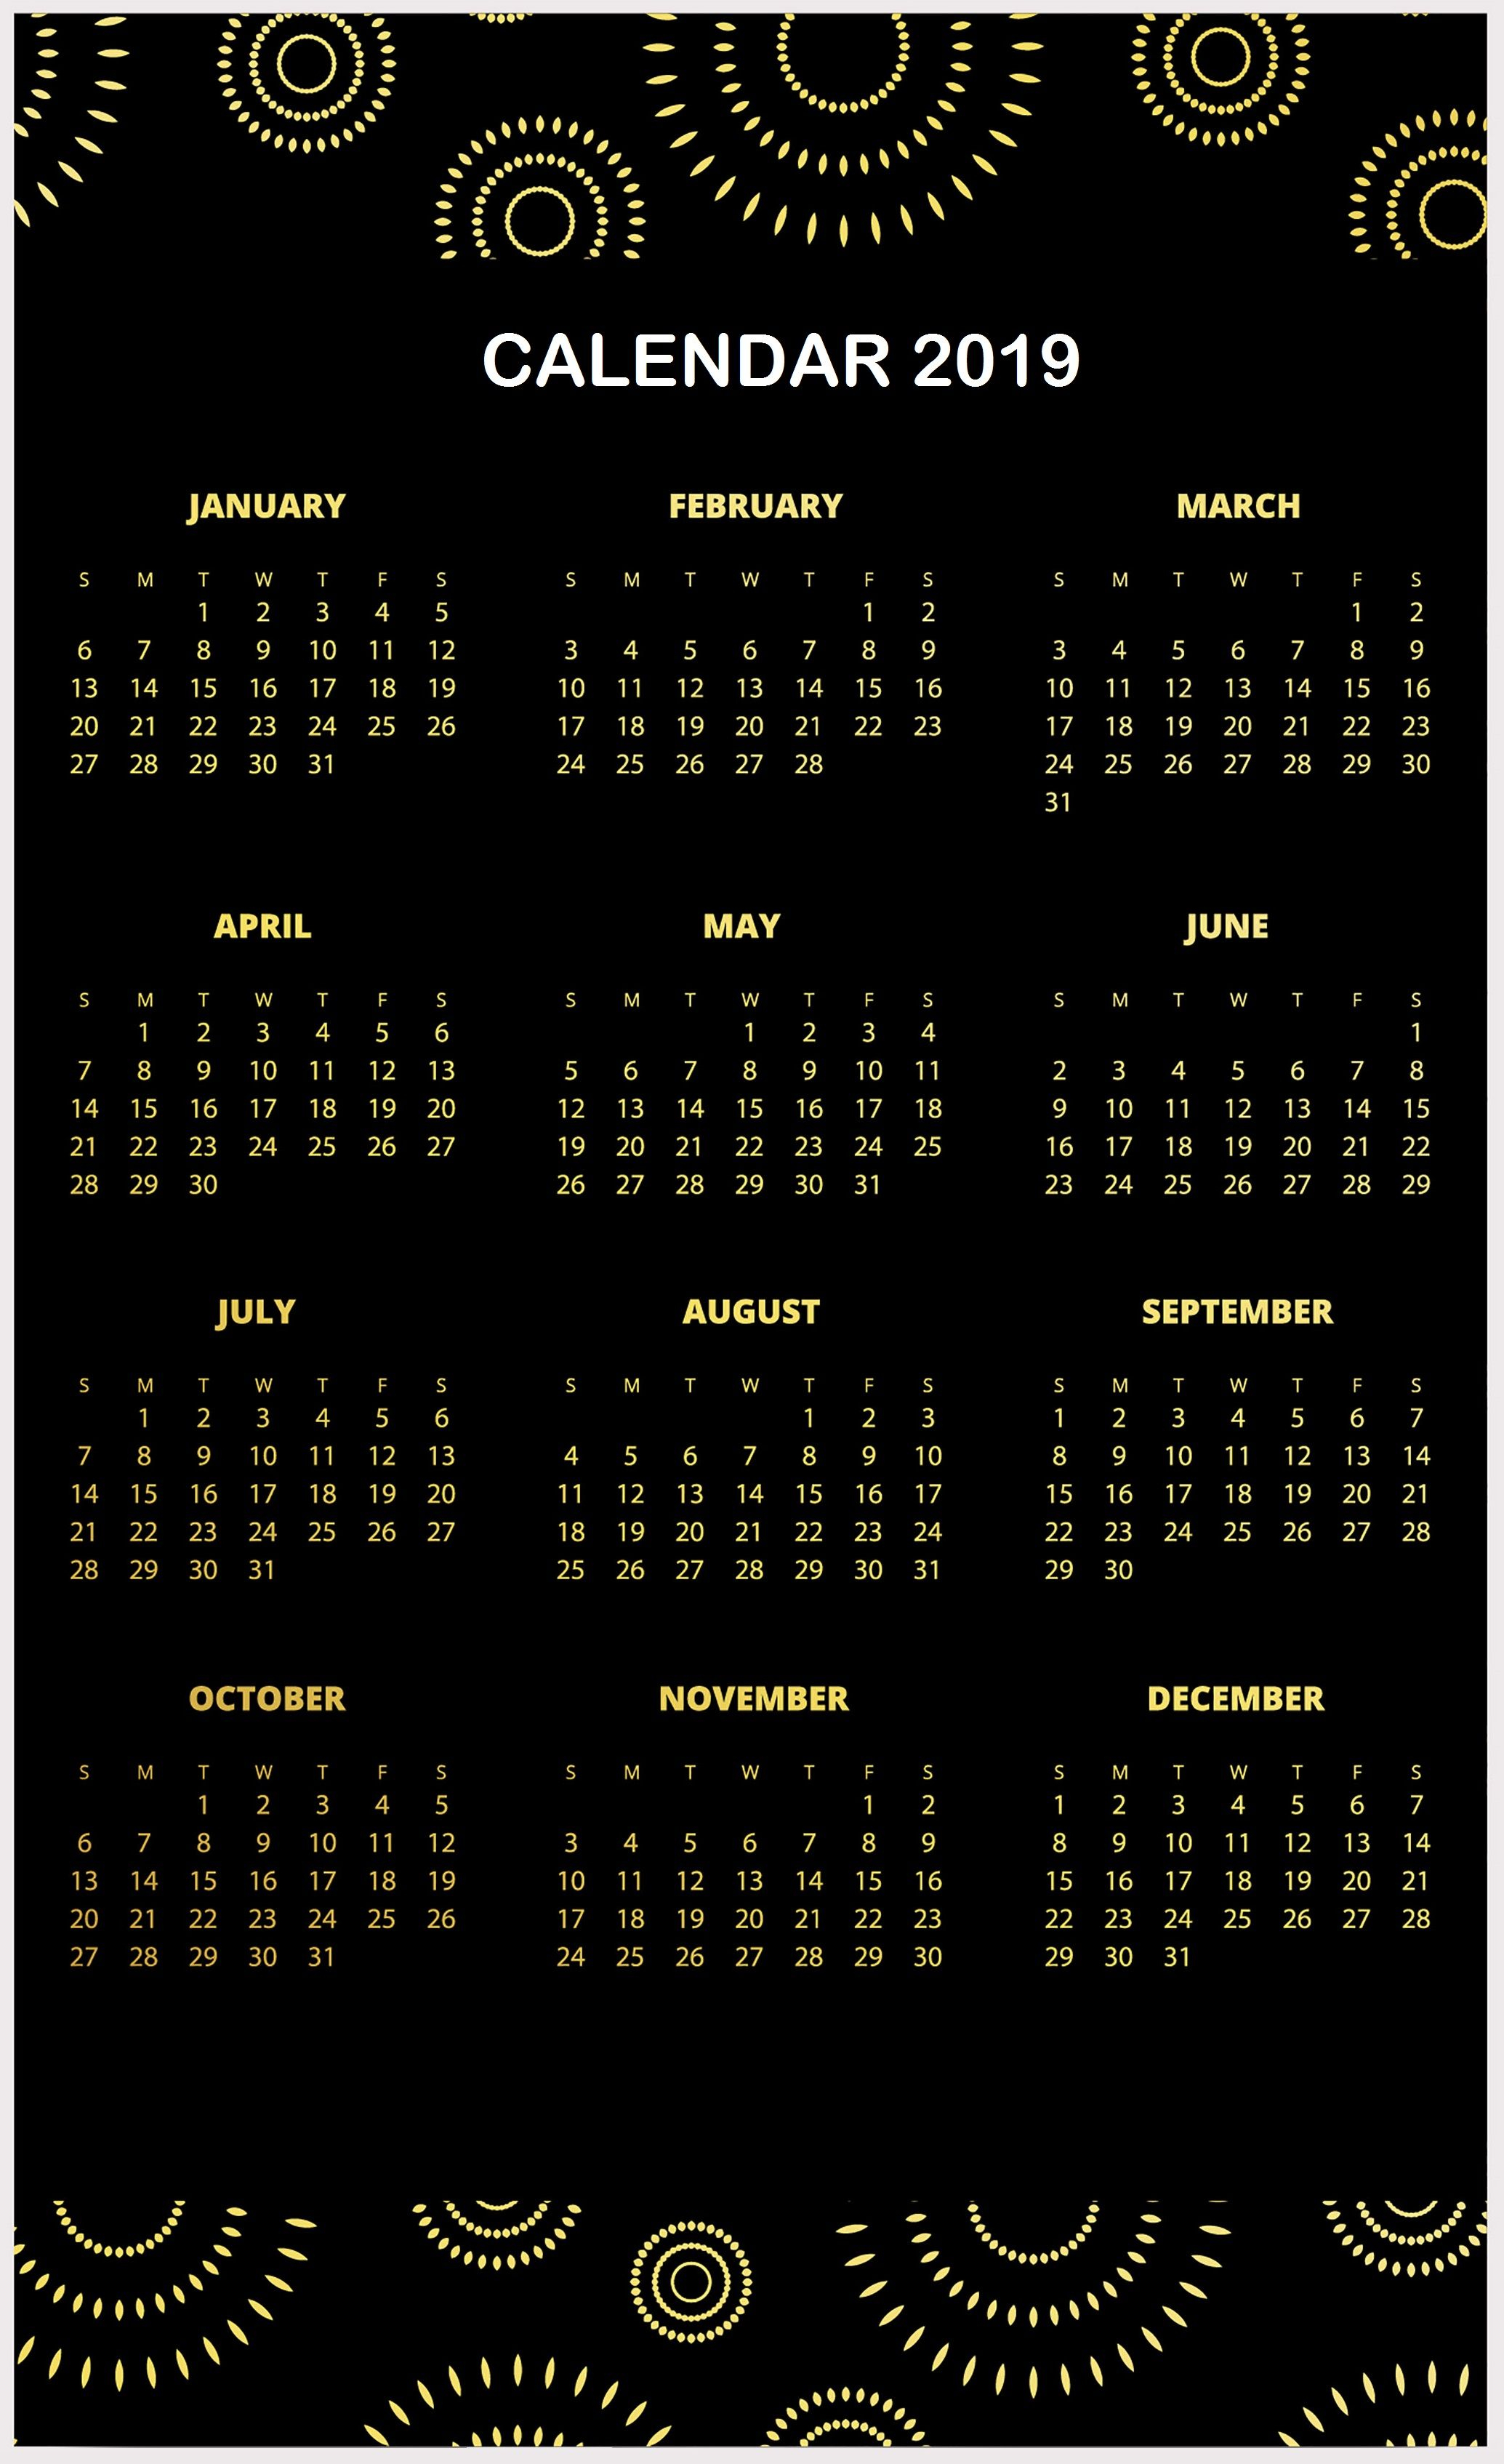 Amazing 2019 Calendar Template One Page Design Layouts | Calendar in Null Blank Calendar To Print